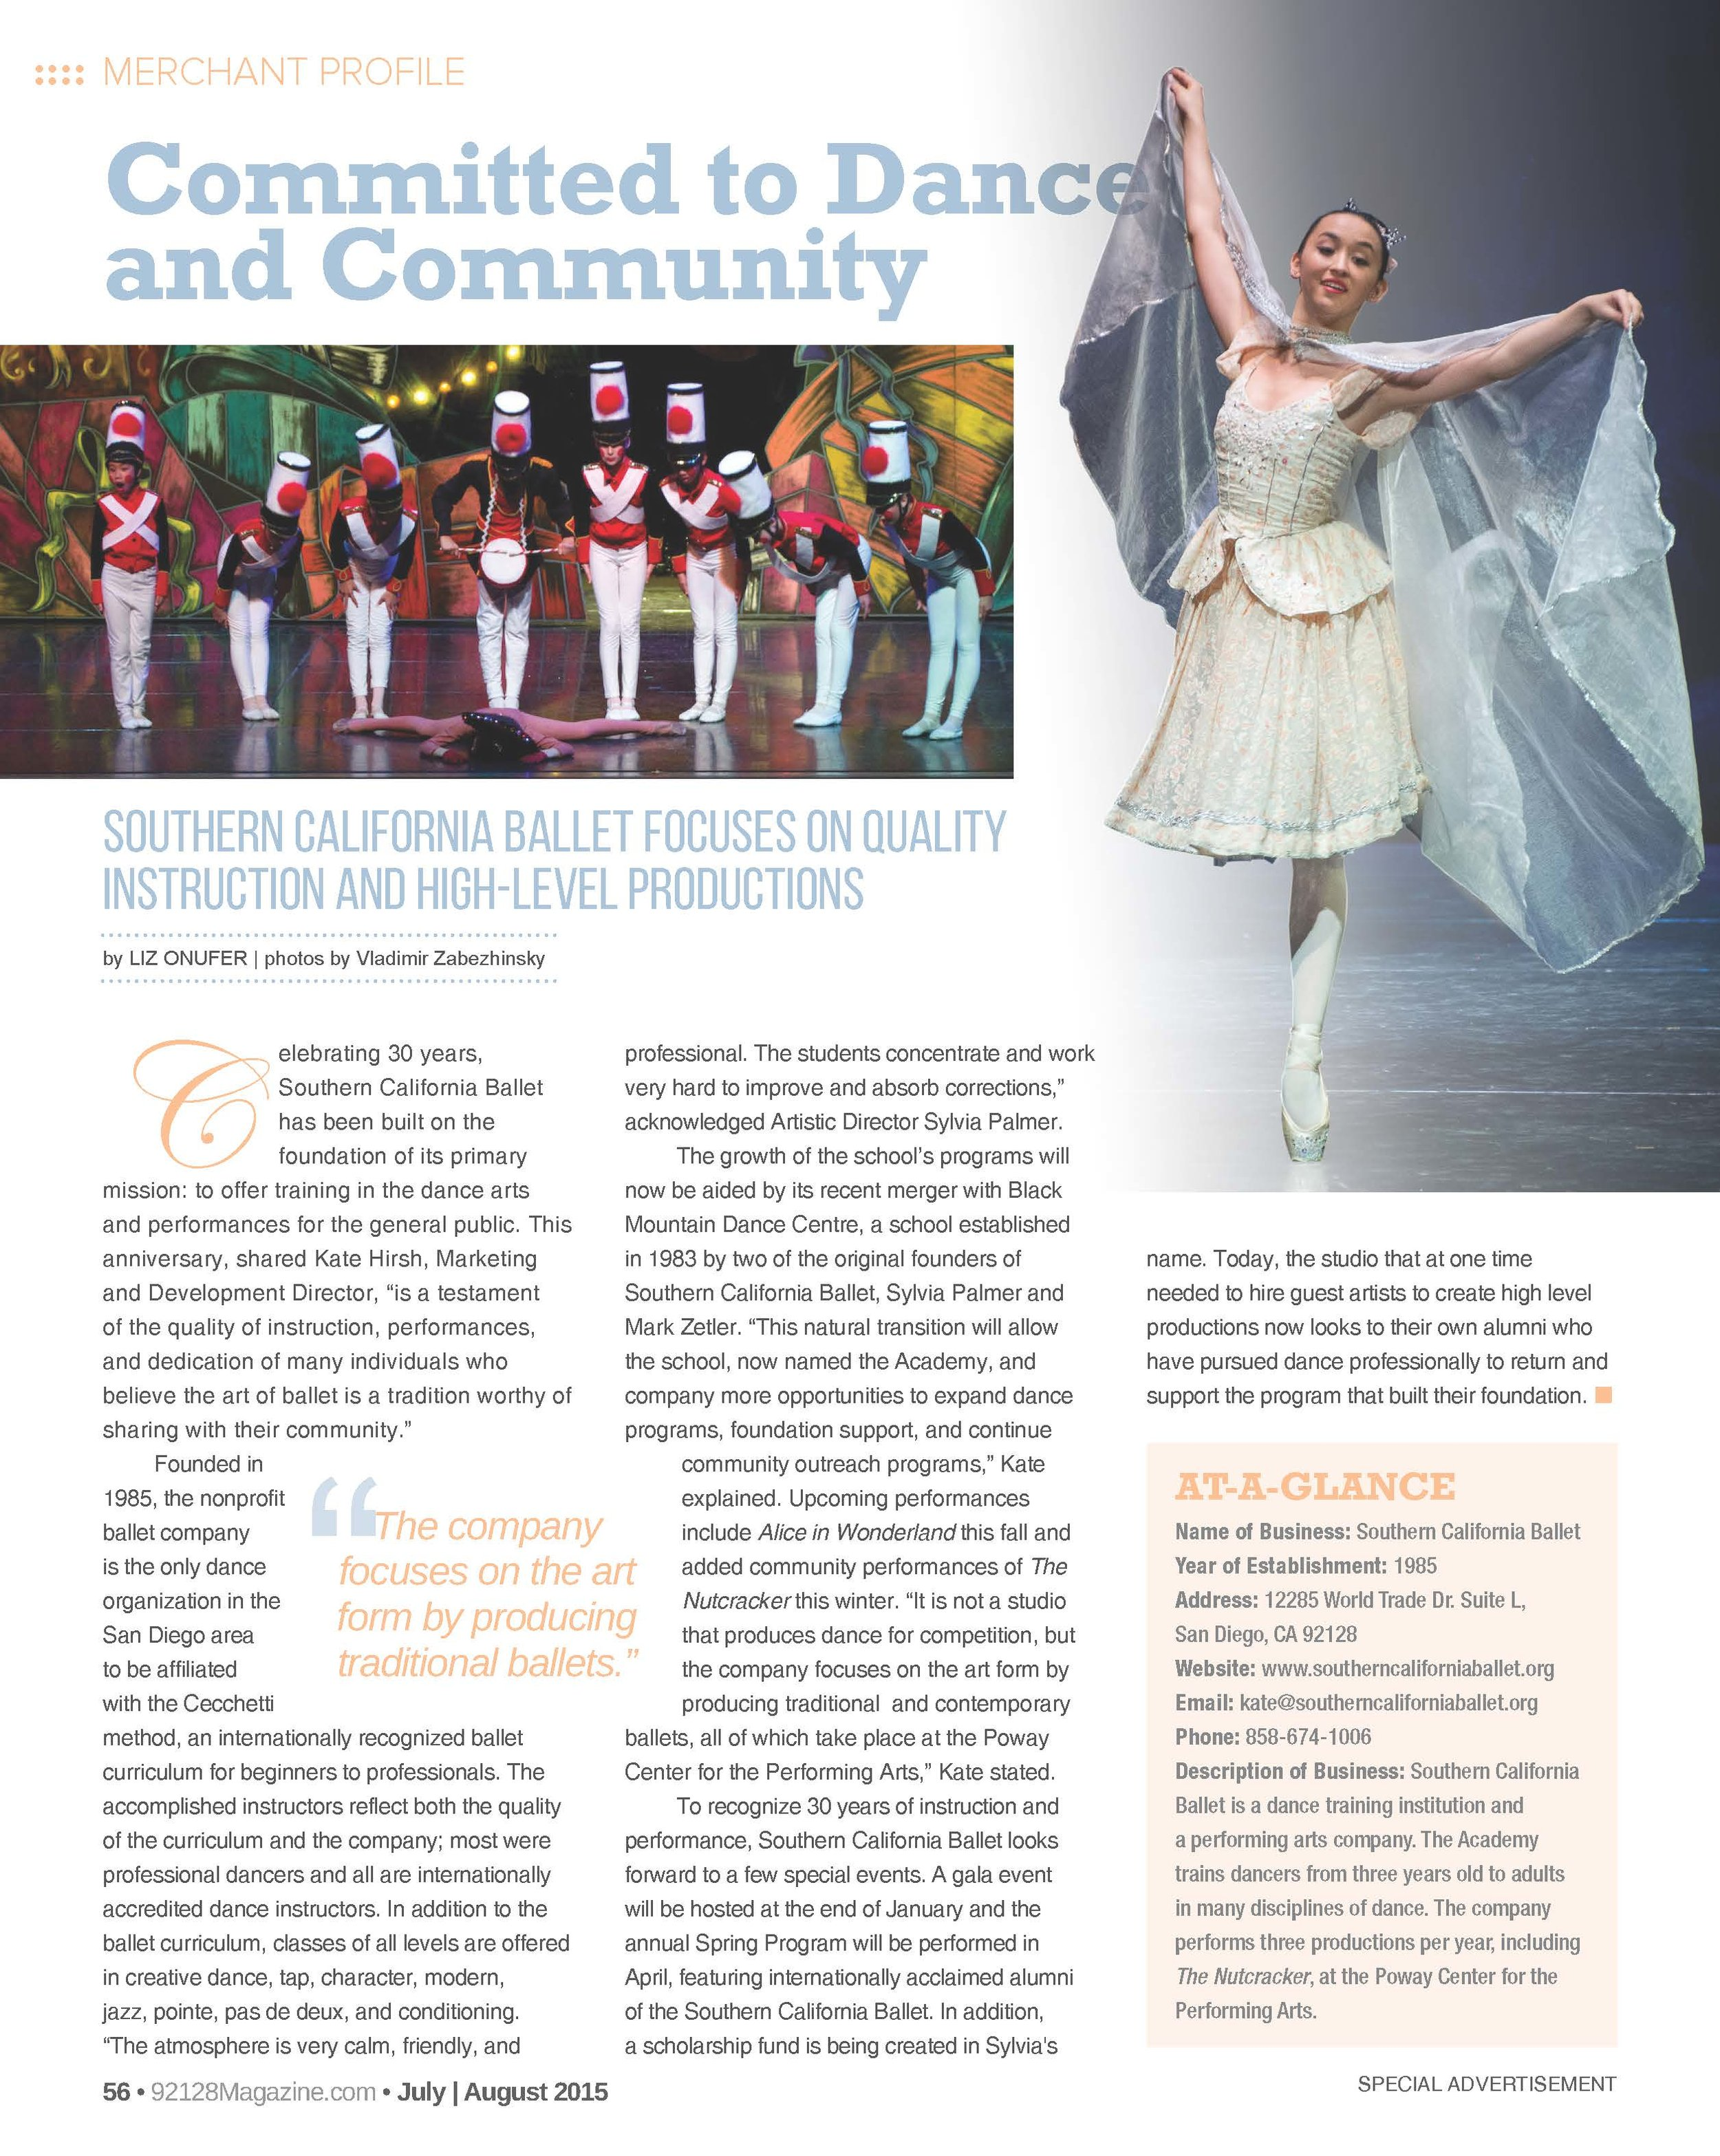 92128 July August 2015, Committed to Dance and the Community.jpg